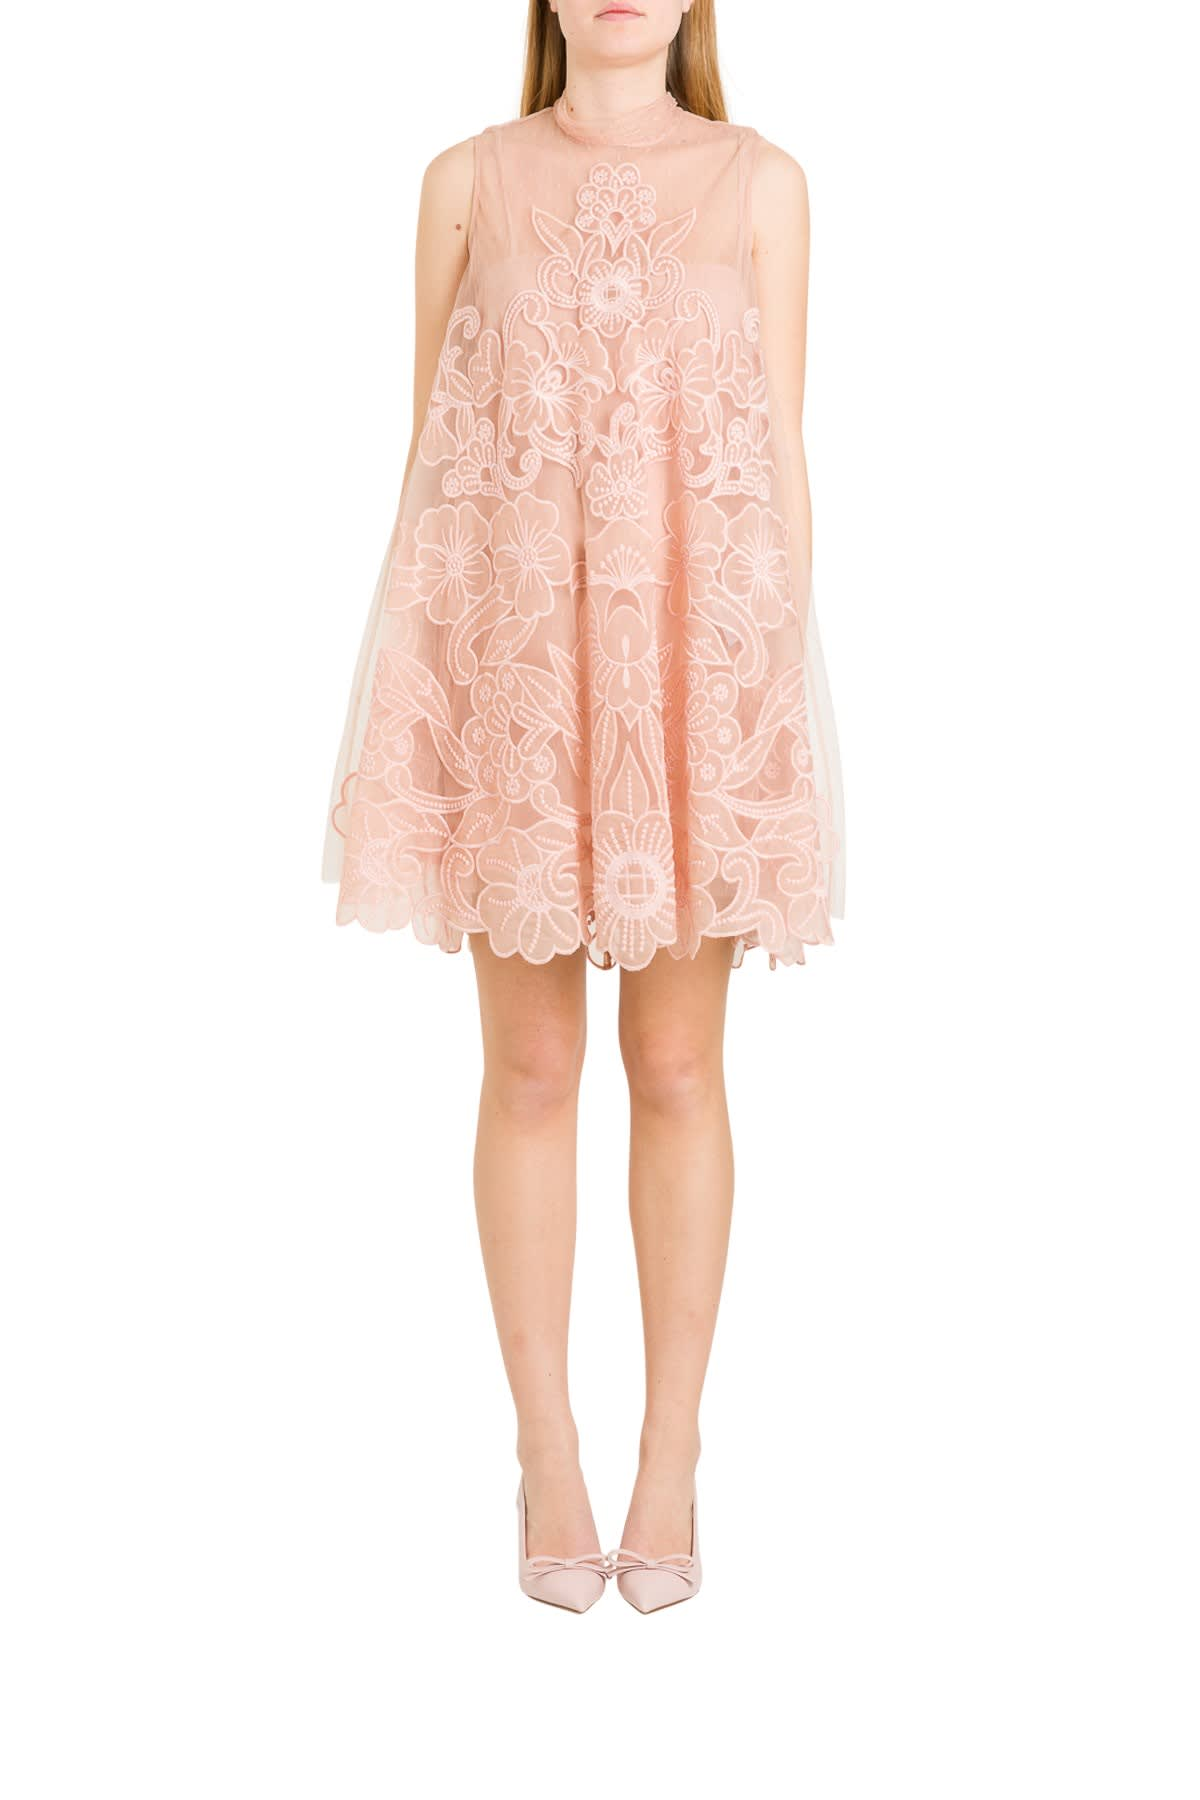 RED Valentino Point Desprit Mini Dress